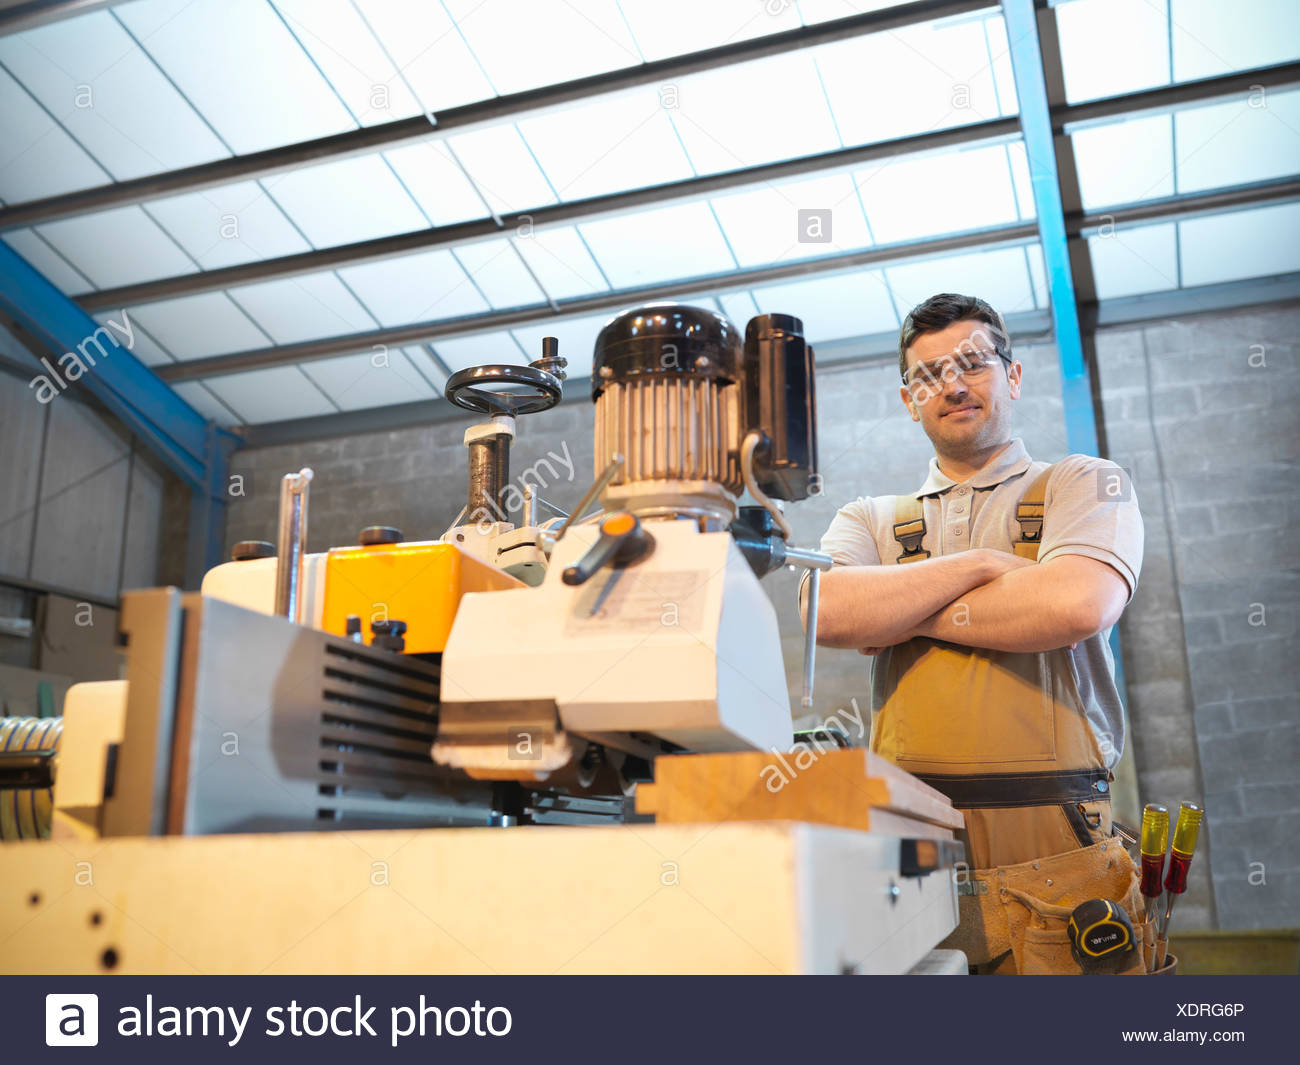 Woodworker with woodwork machine - Stock Image